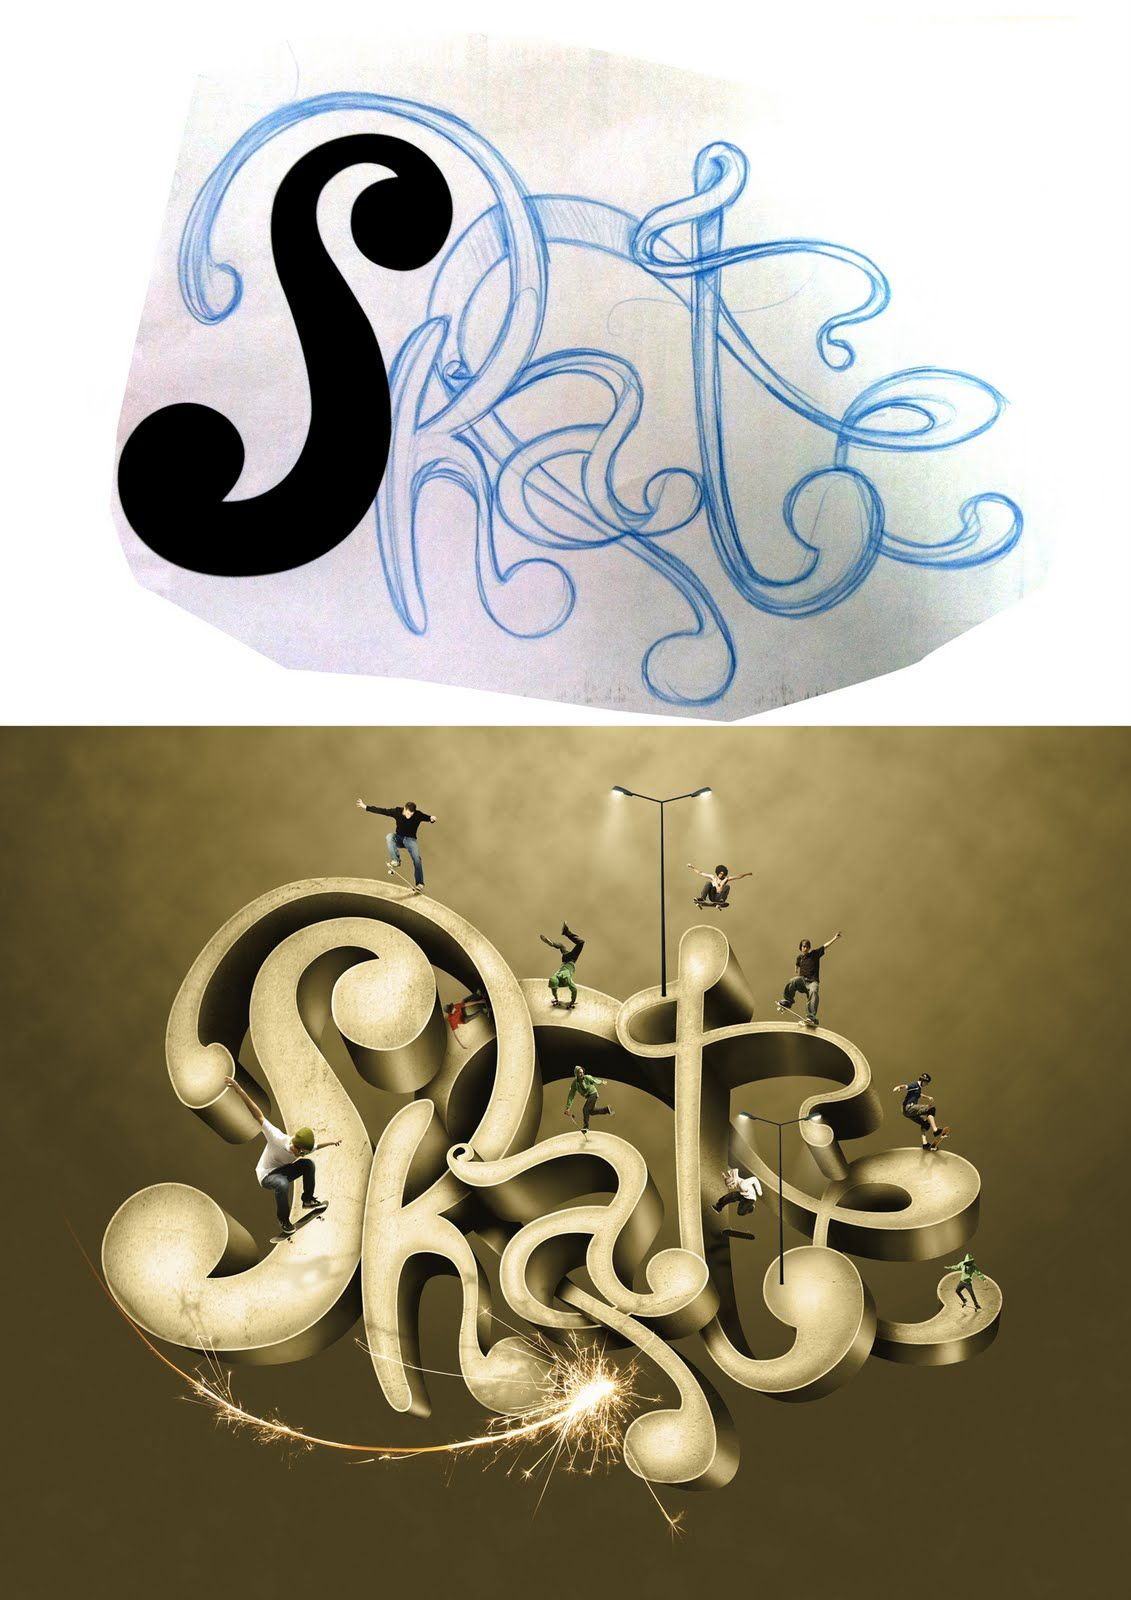 Hugo Ceneviva - Art Director: Typography Skate